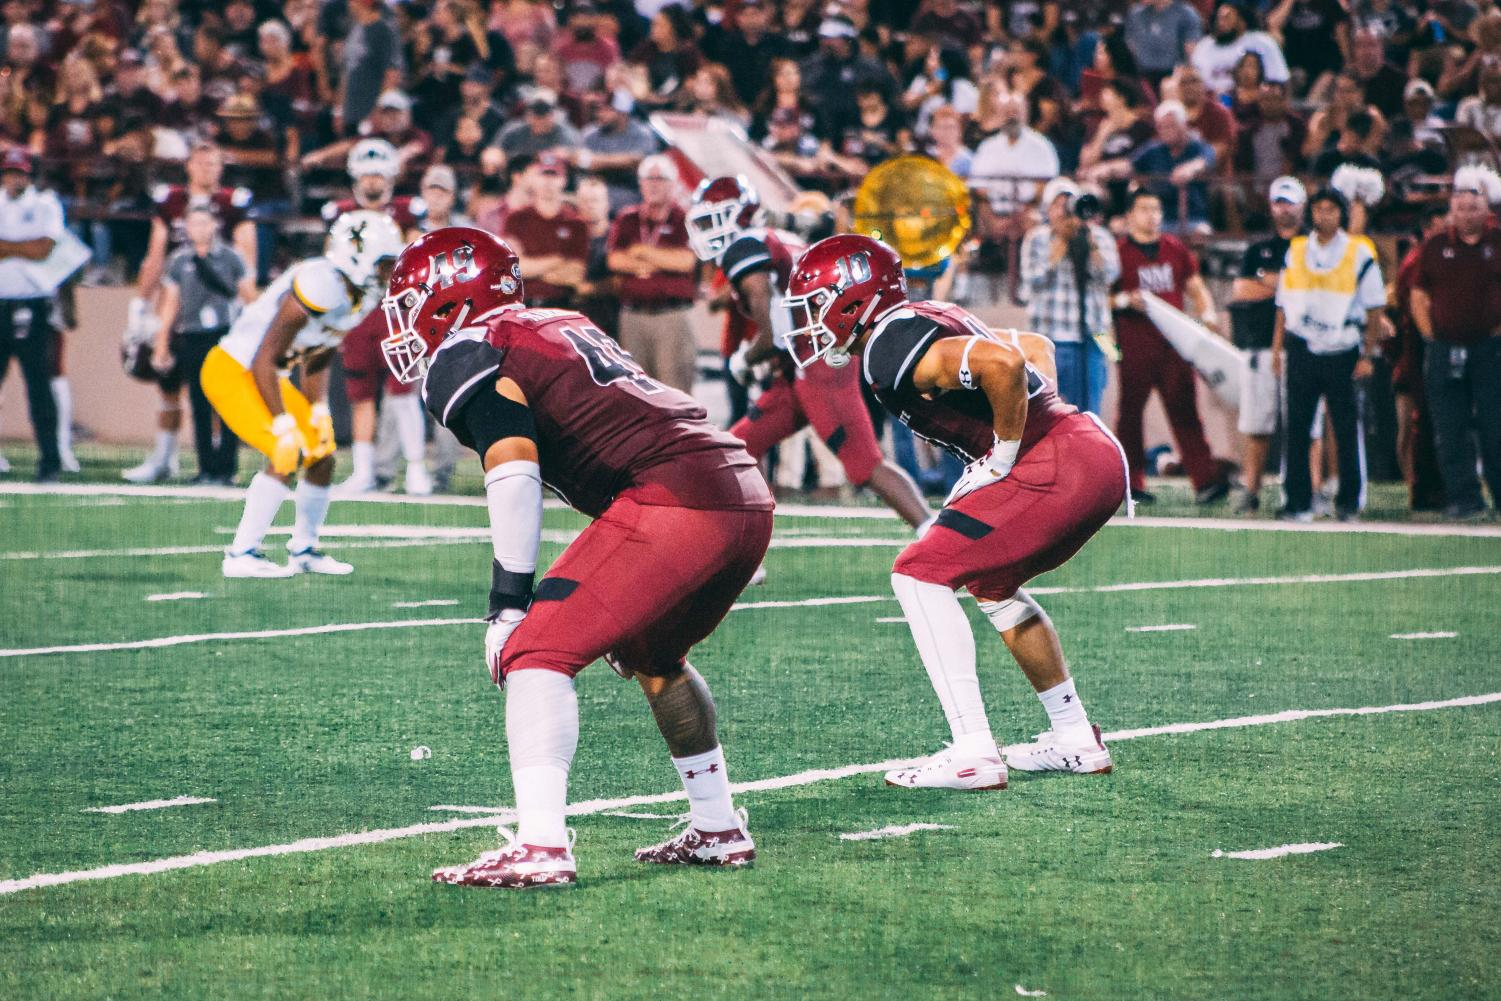 NM State hosts Alcorn State this afternoon for the team's 2018 home finale.